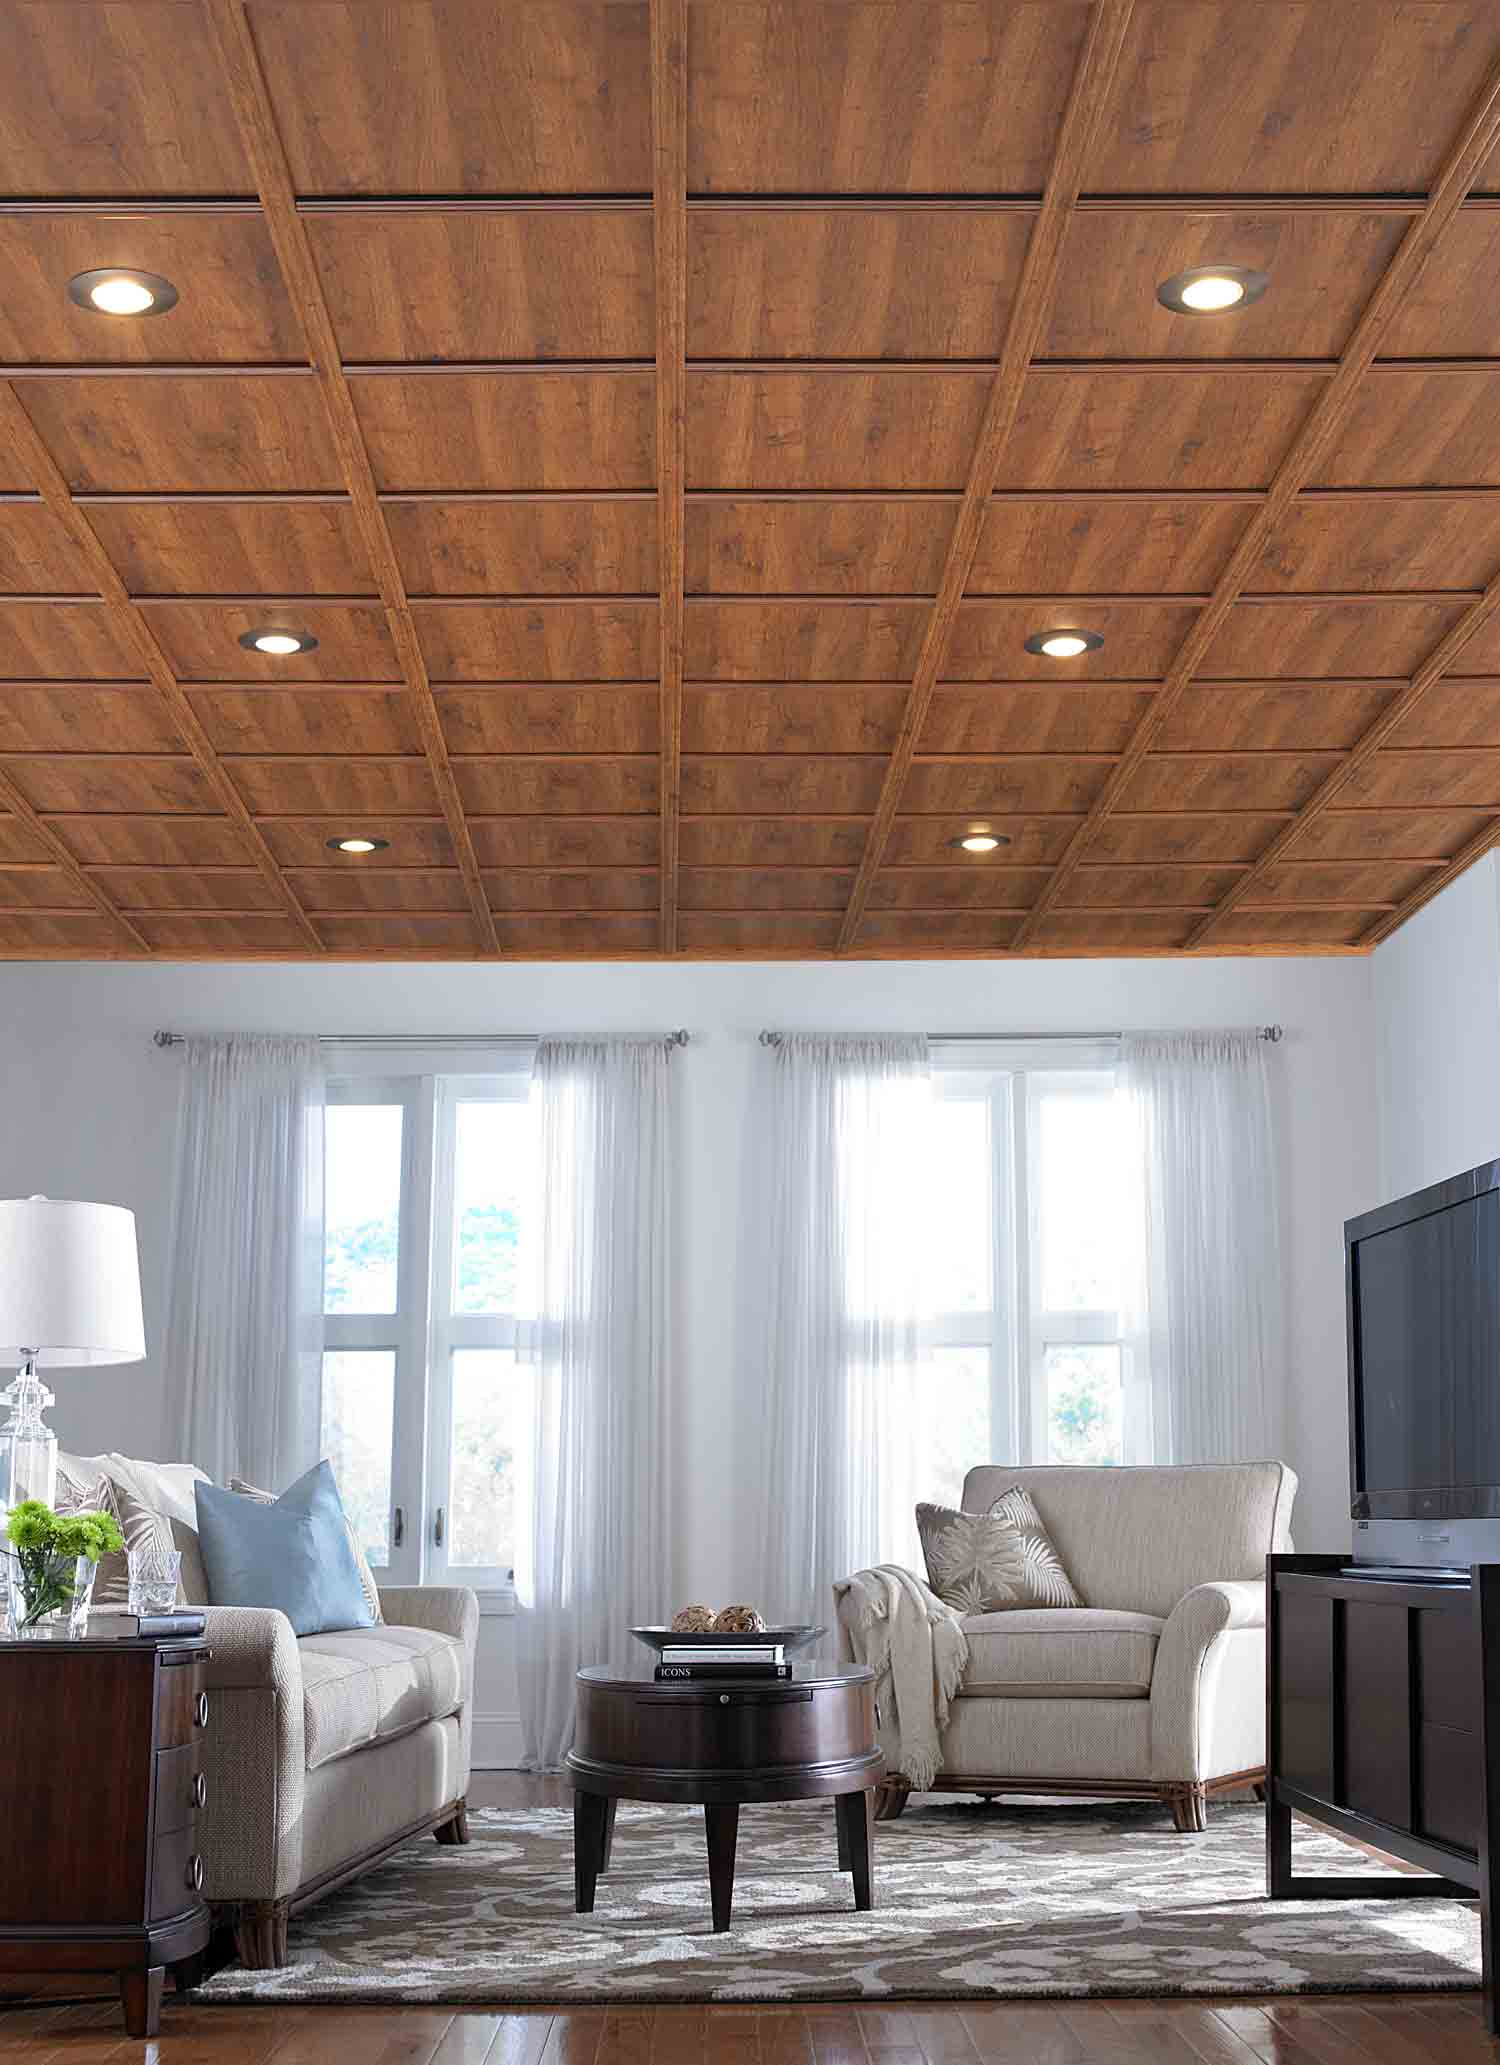 Luxury Wooden Ceiling Designs for Living Room